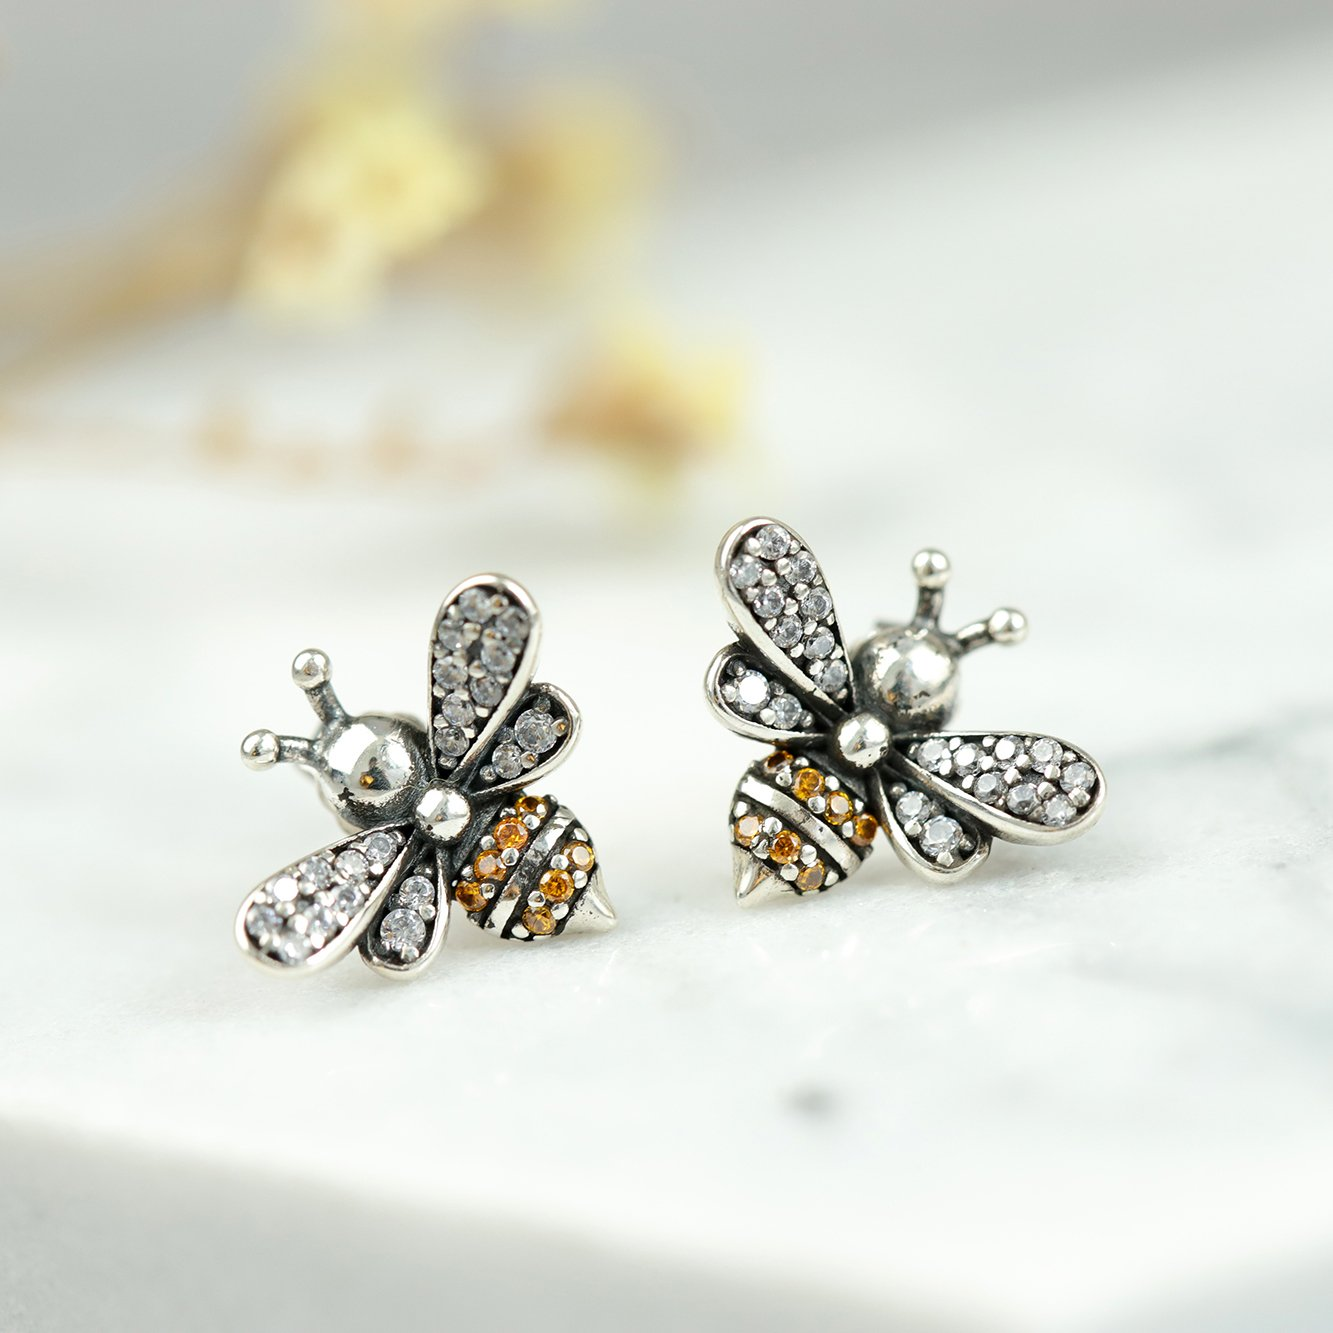 Lovely Bee Kiss Stud Earrings